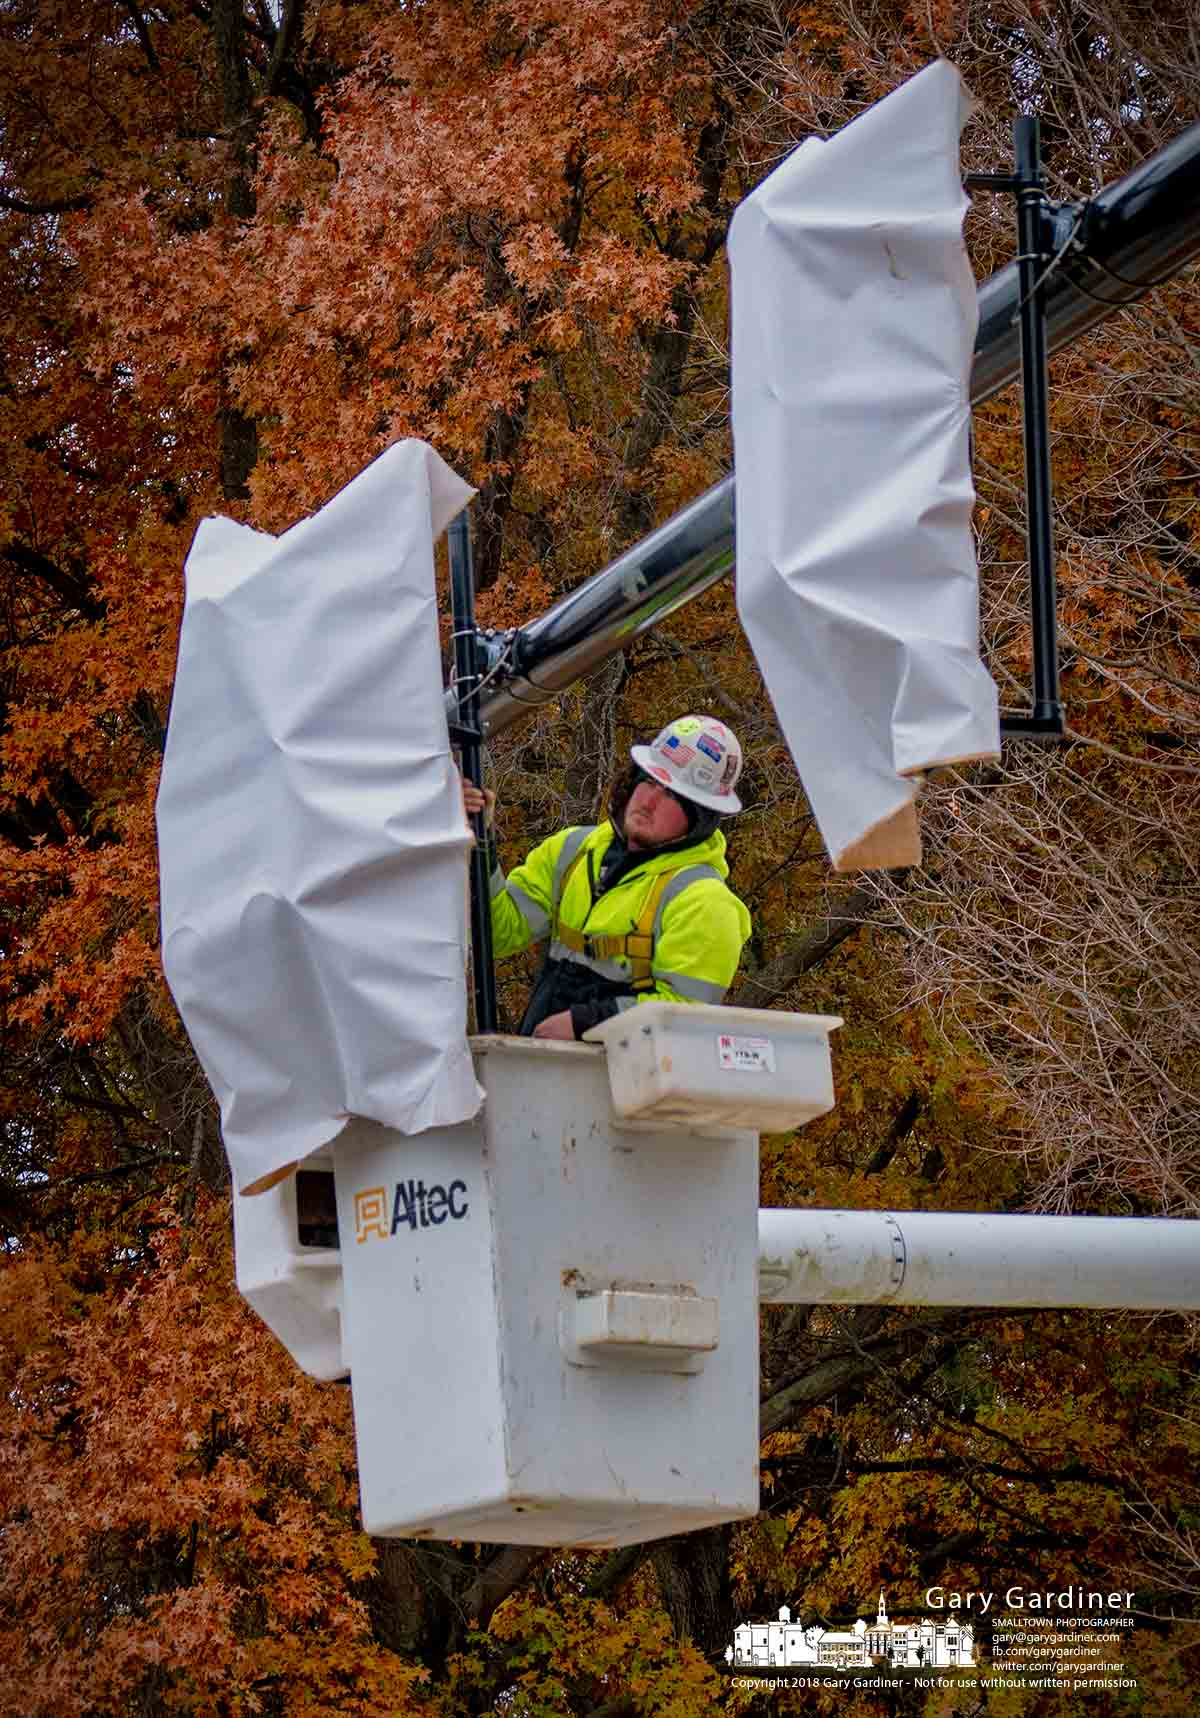 An electrician installs one of the new traffic signals over the entrance to Sharon Woods Park on Cleveland Ave. where construction on the intersection of Cleveland and Schrock Road nears an end. My Final Photo for Nov. 20, 2018.